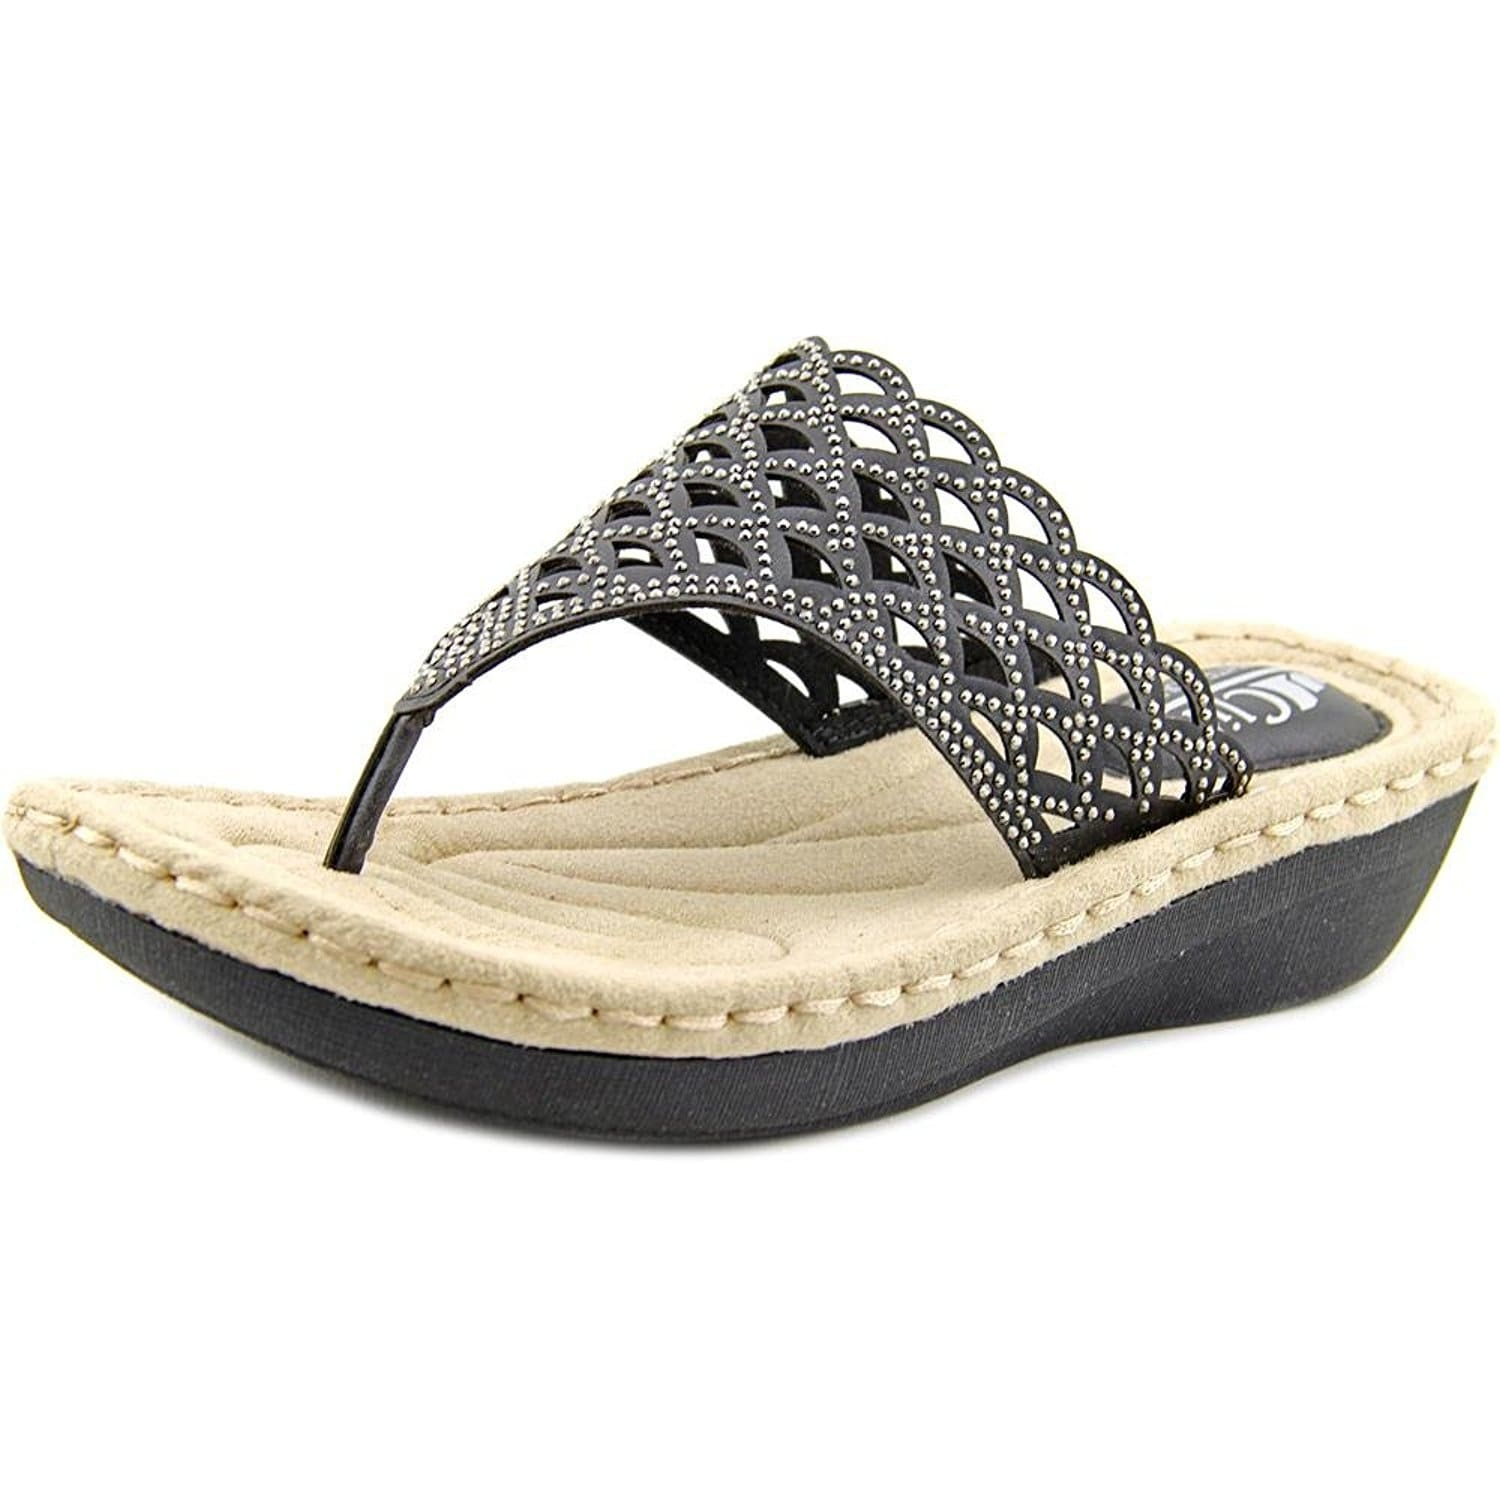 ddfb983c2 Buy Mid Heel Women s Sandals Online at Overstock